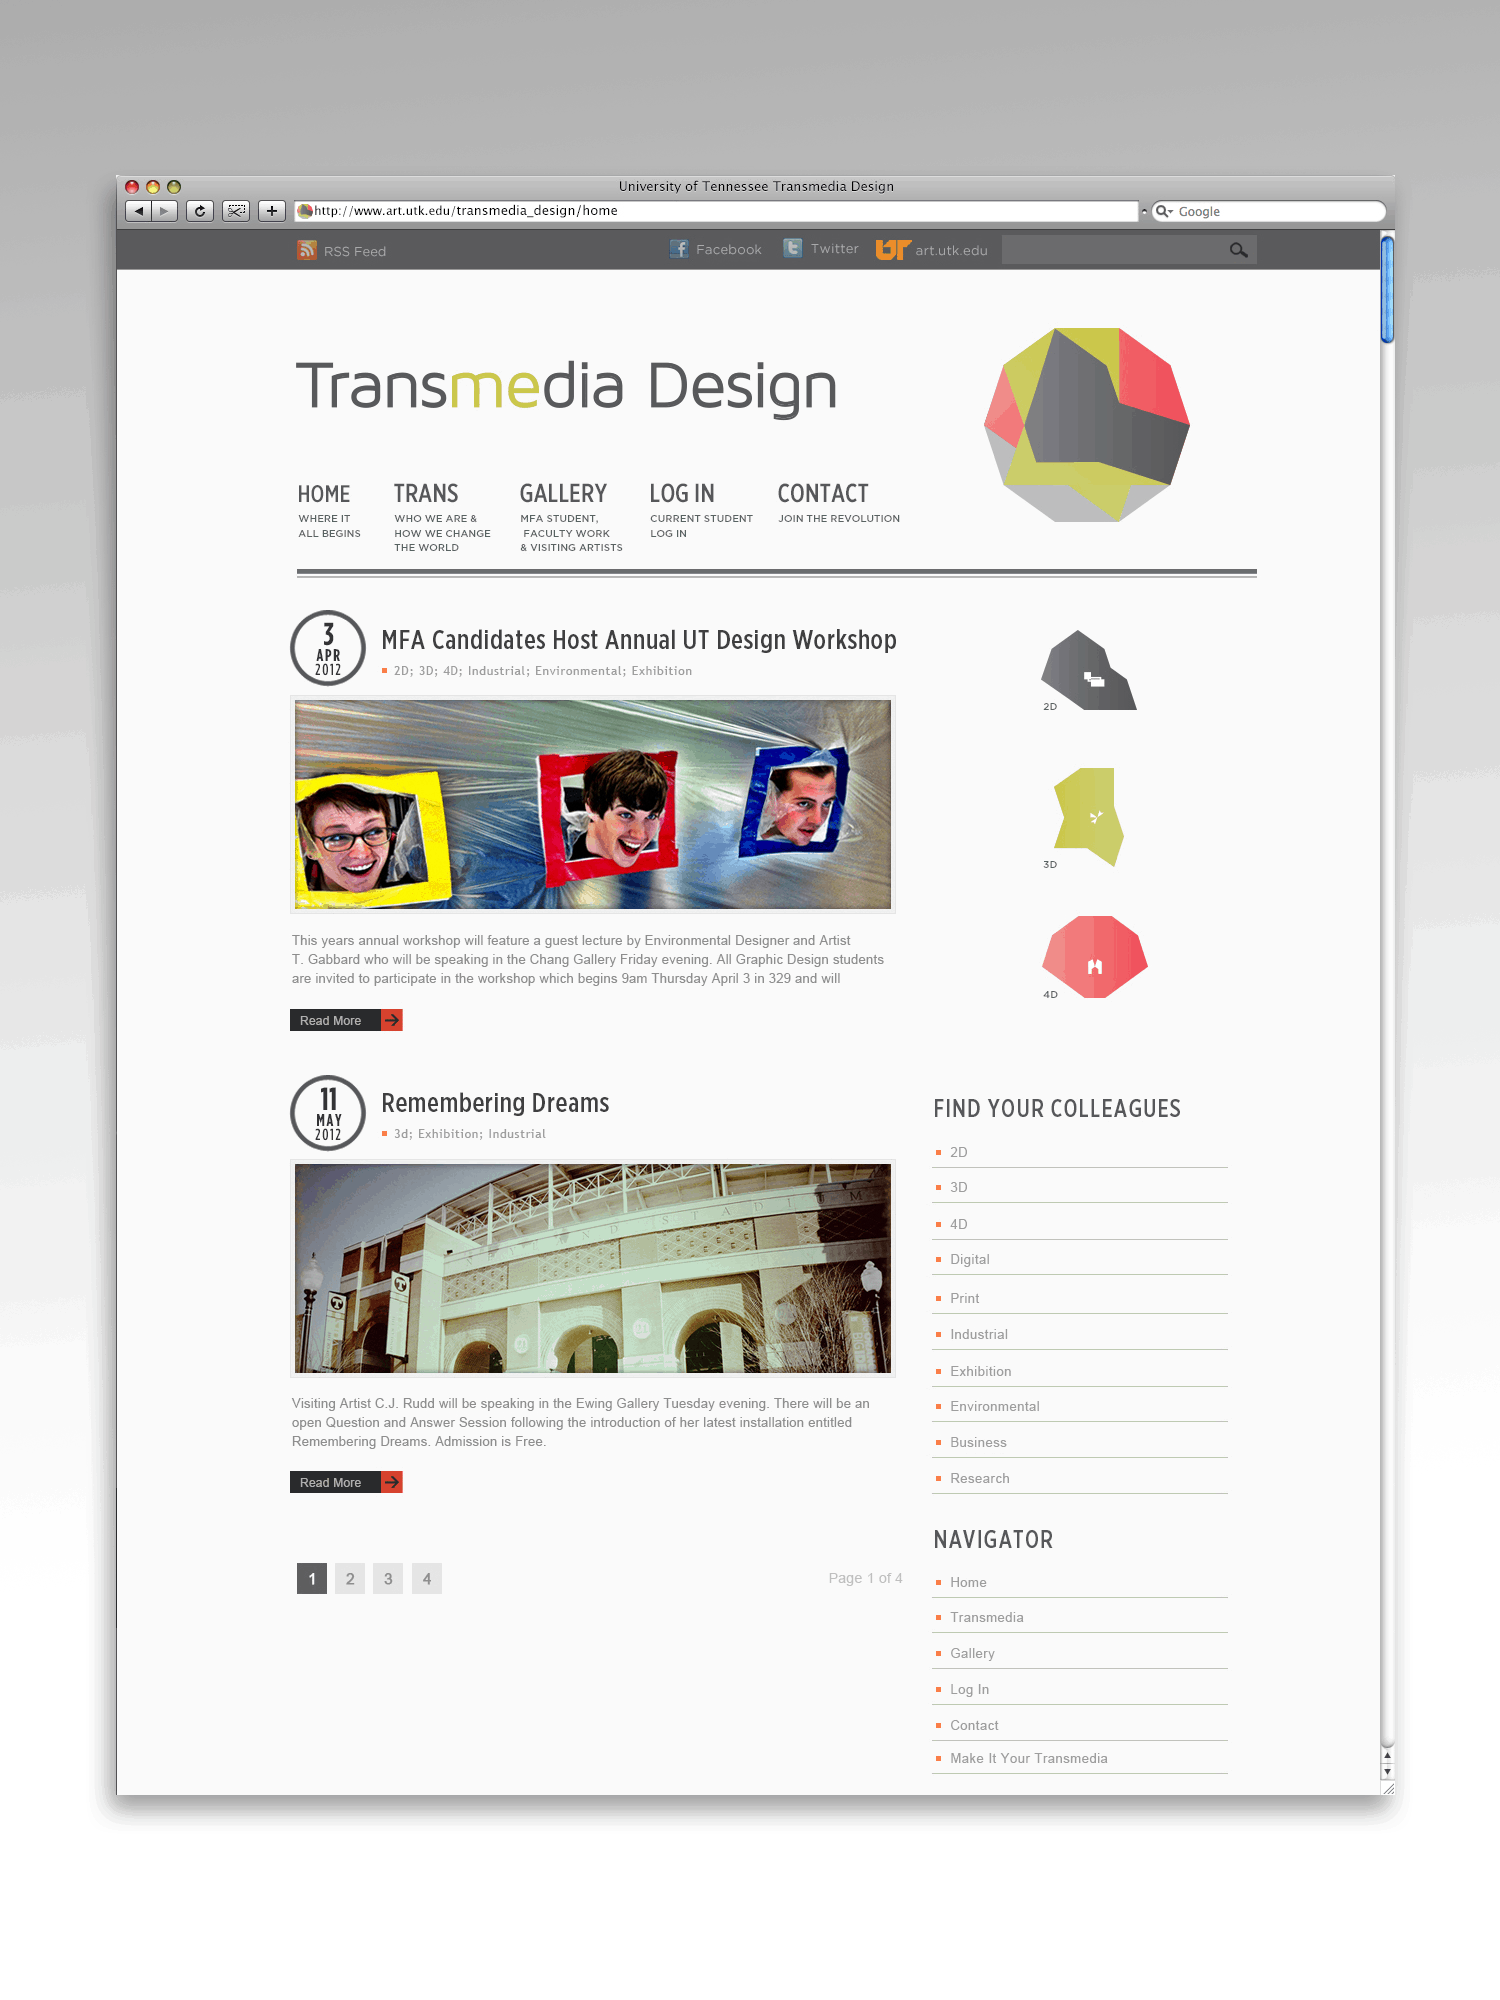 The University of Tennessee Transmedia Design